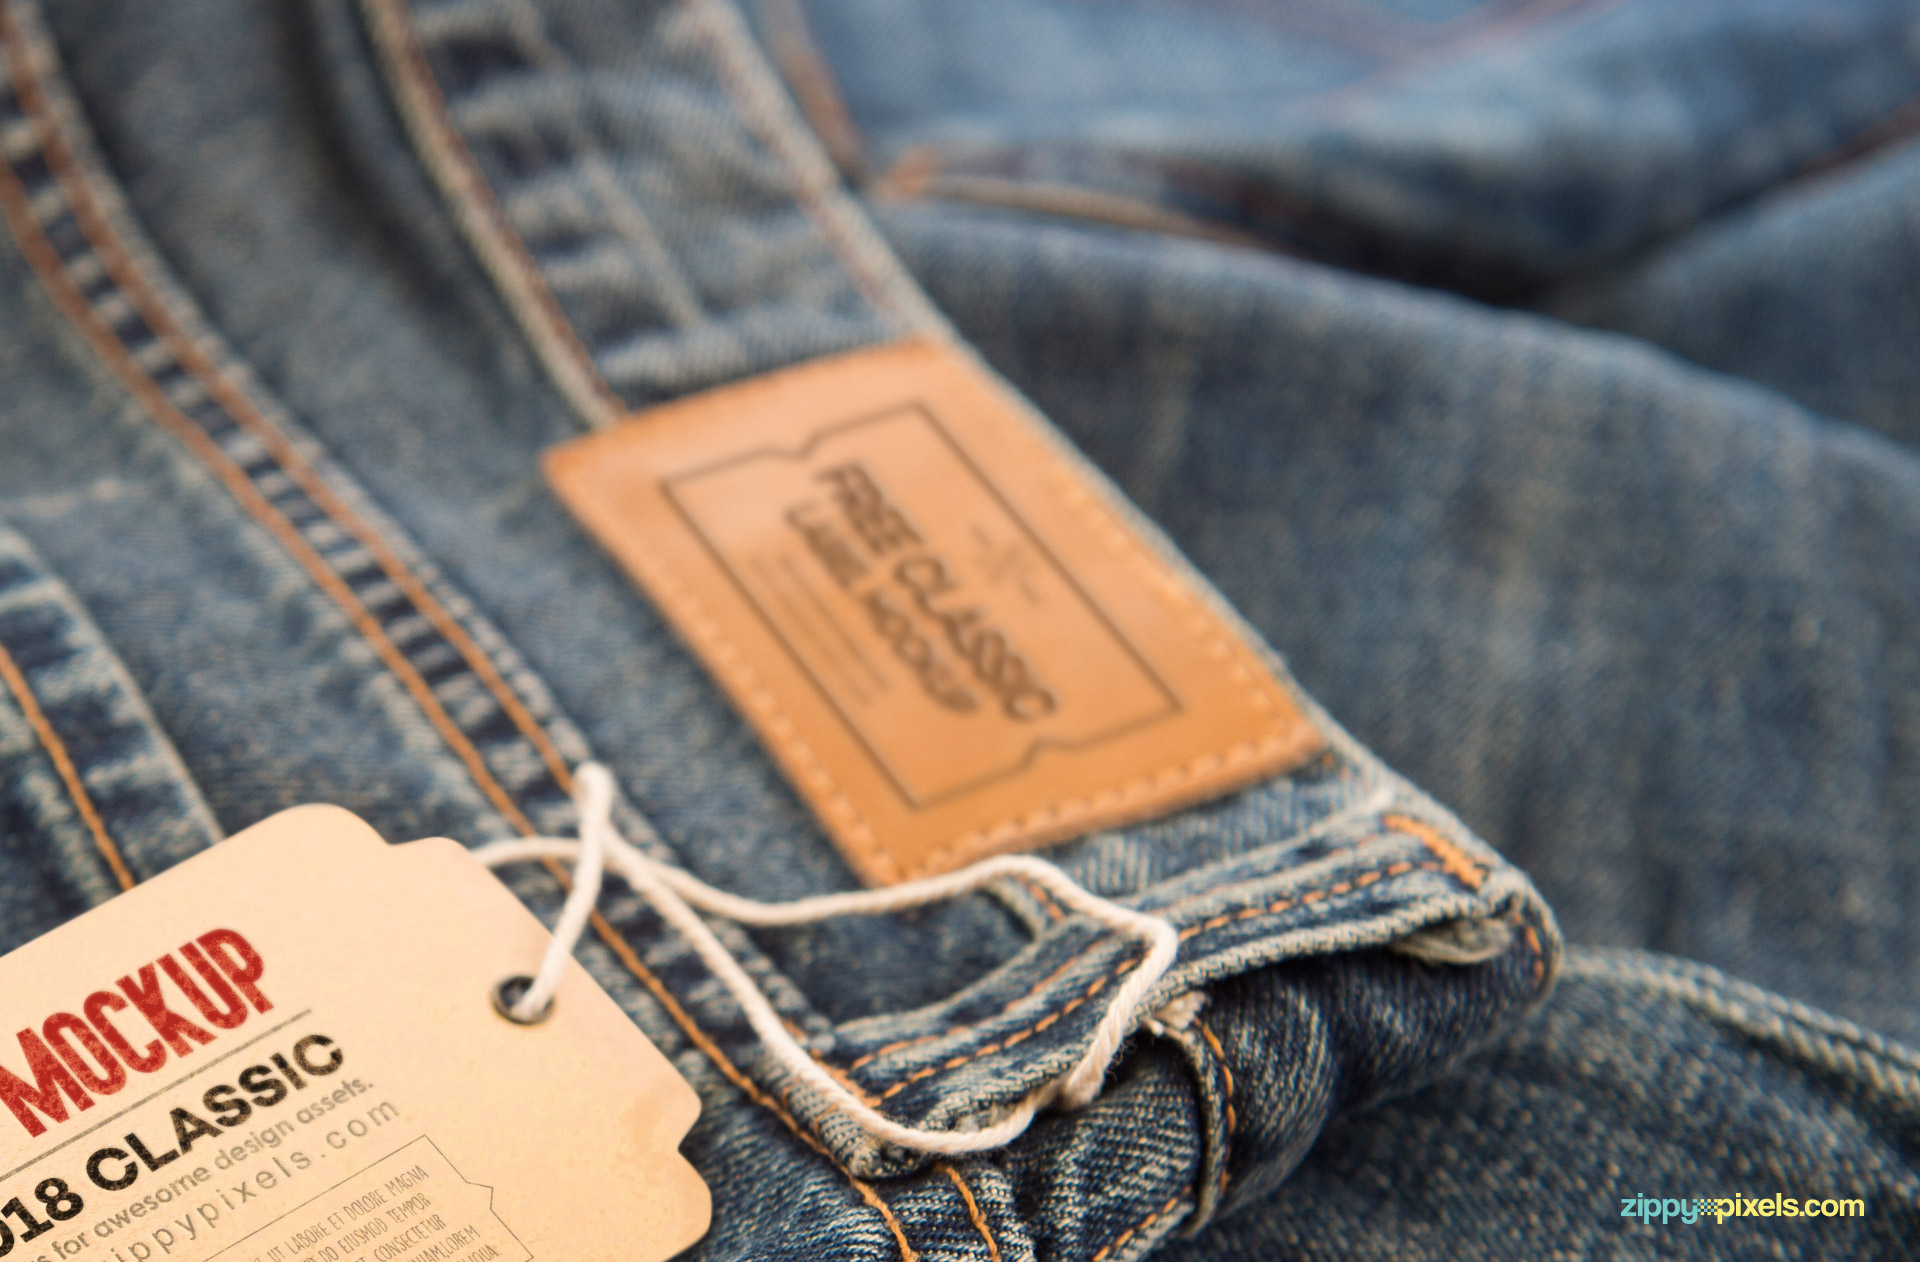 Blur preview of the jeans label.